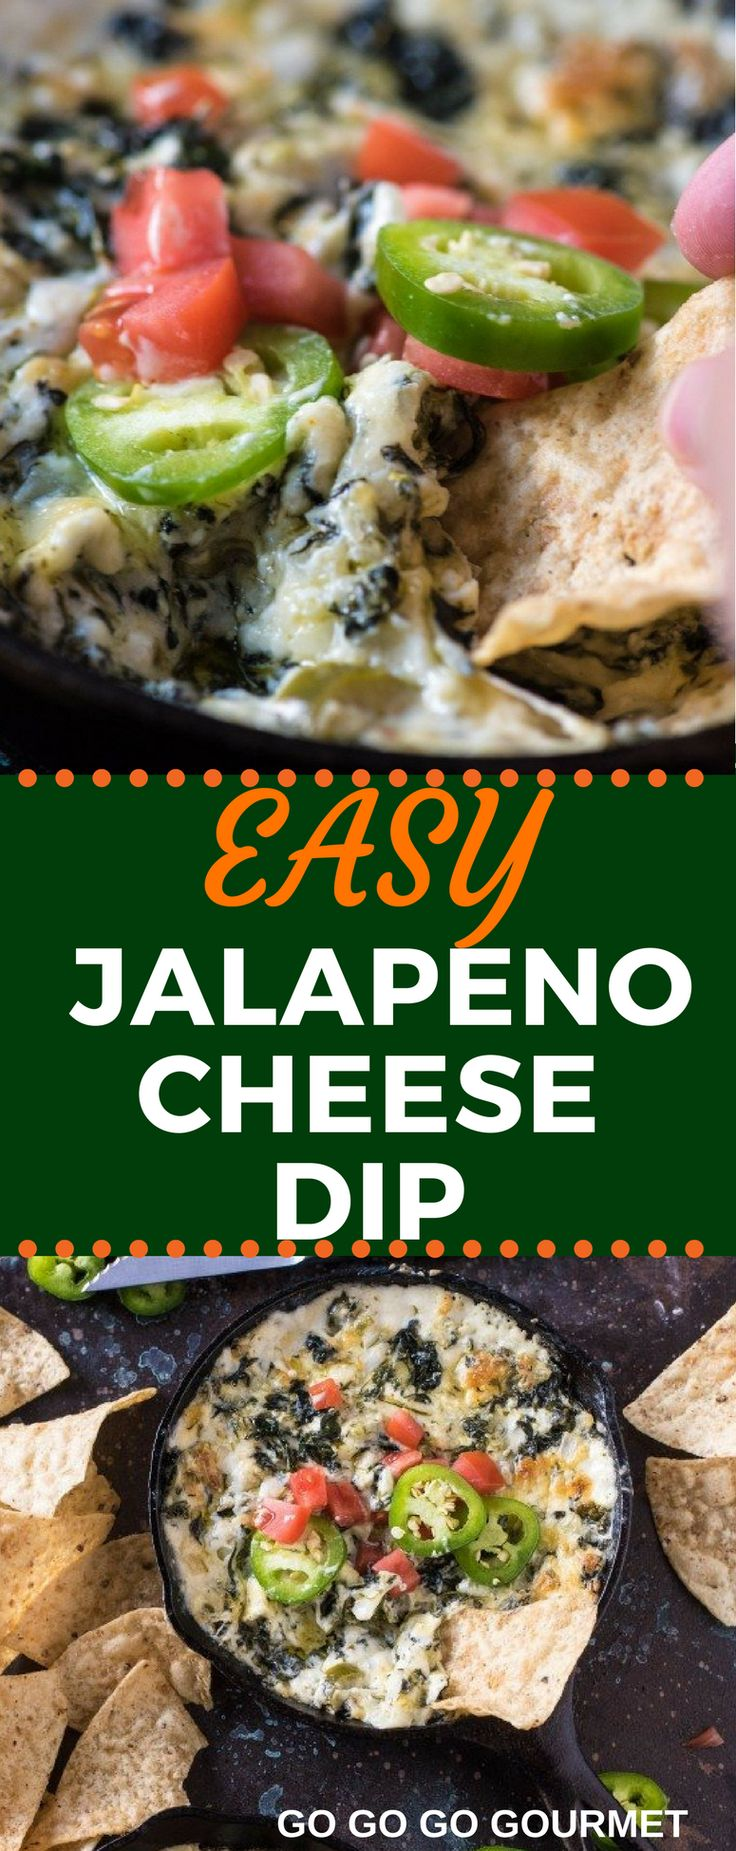 This Easy Spicy Jalapeno Spinach Dip recipe is baked right in the oven to make the perfect Super Bowl snack! You could even add bacon to kick it up a notch! #superbowl #superbowlfood #cheesedip #spinachdipg